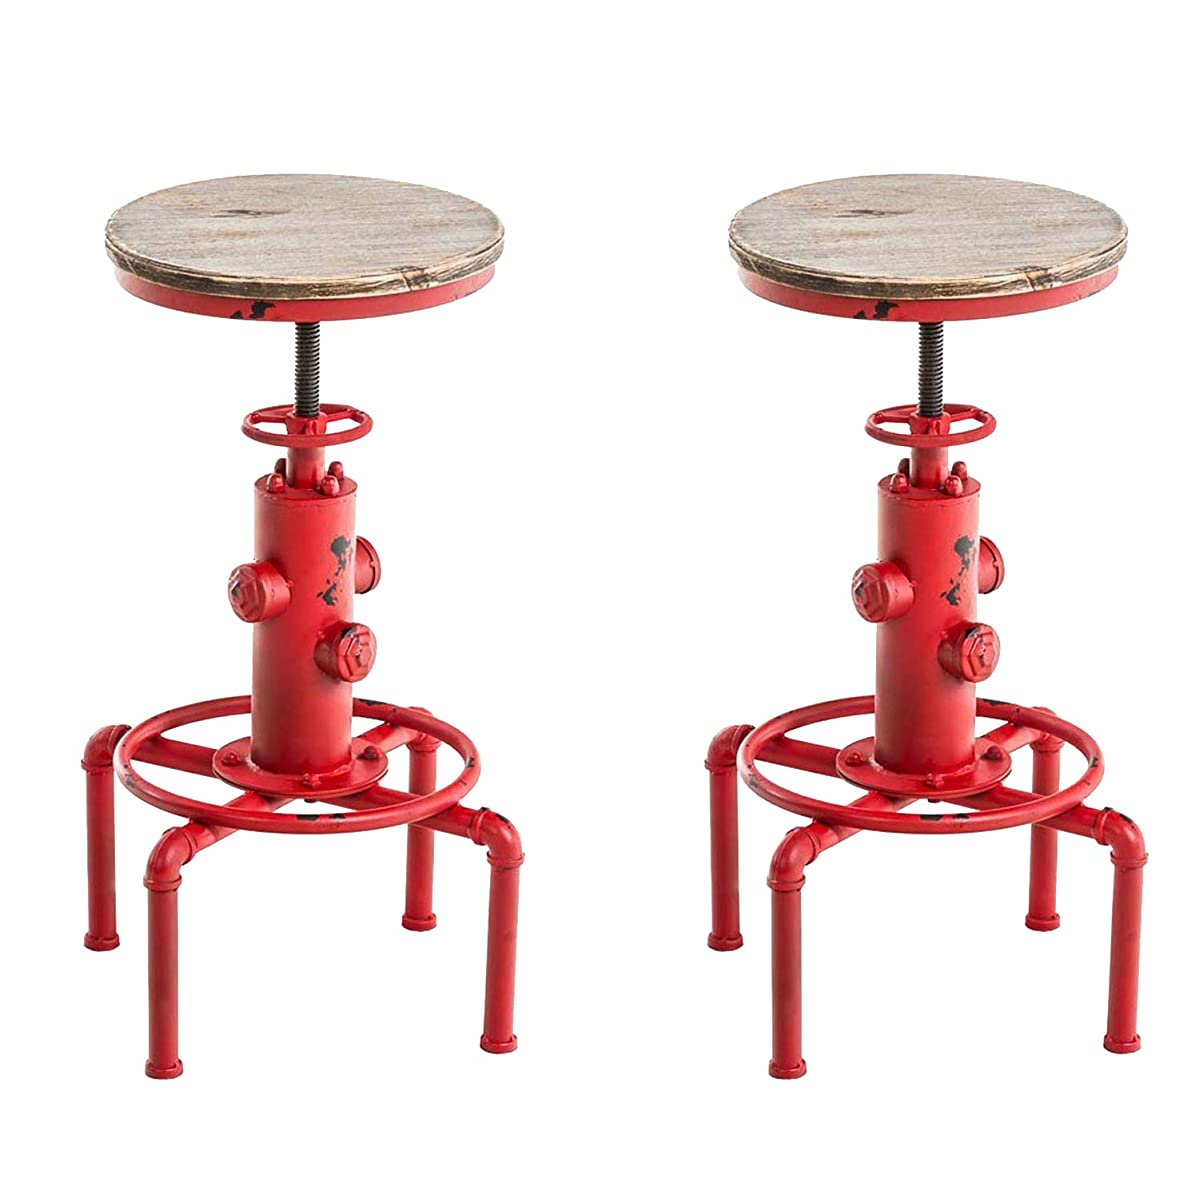 Topower American Antique Vintage Industrial Barstool Solid Wood Water Pipe Fire Hydrant Design Cafe Coffee Industrial Bar Stool (Antique Red, 2)